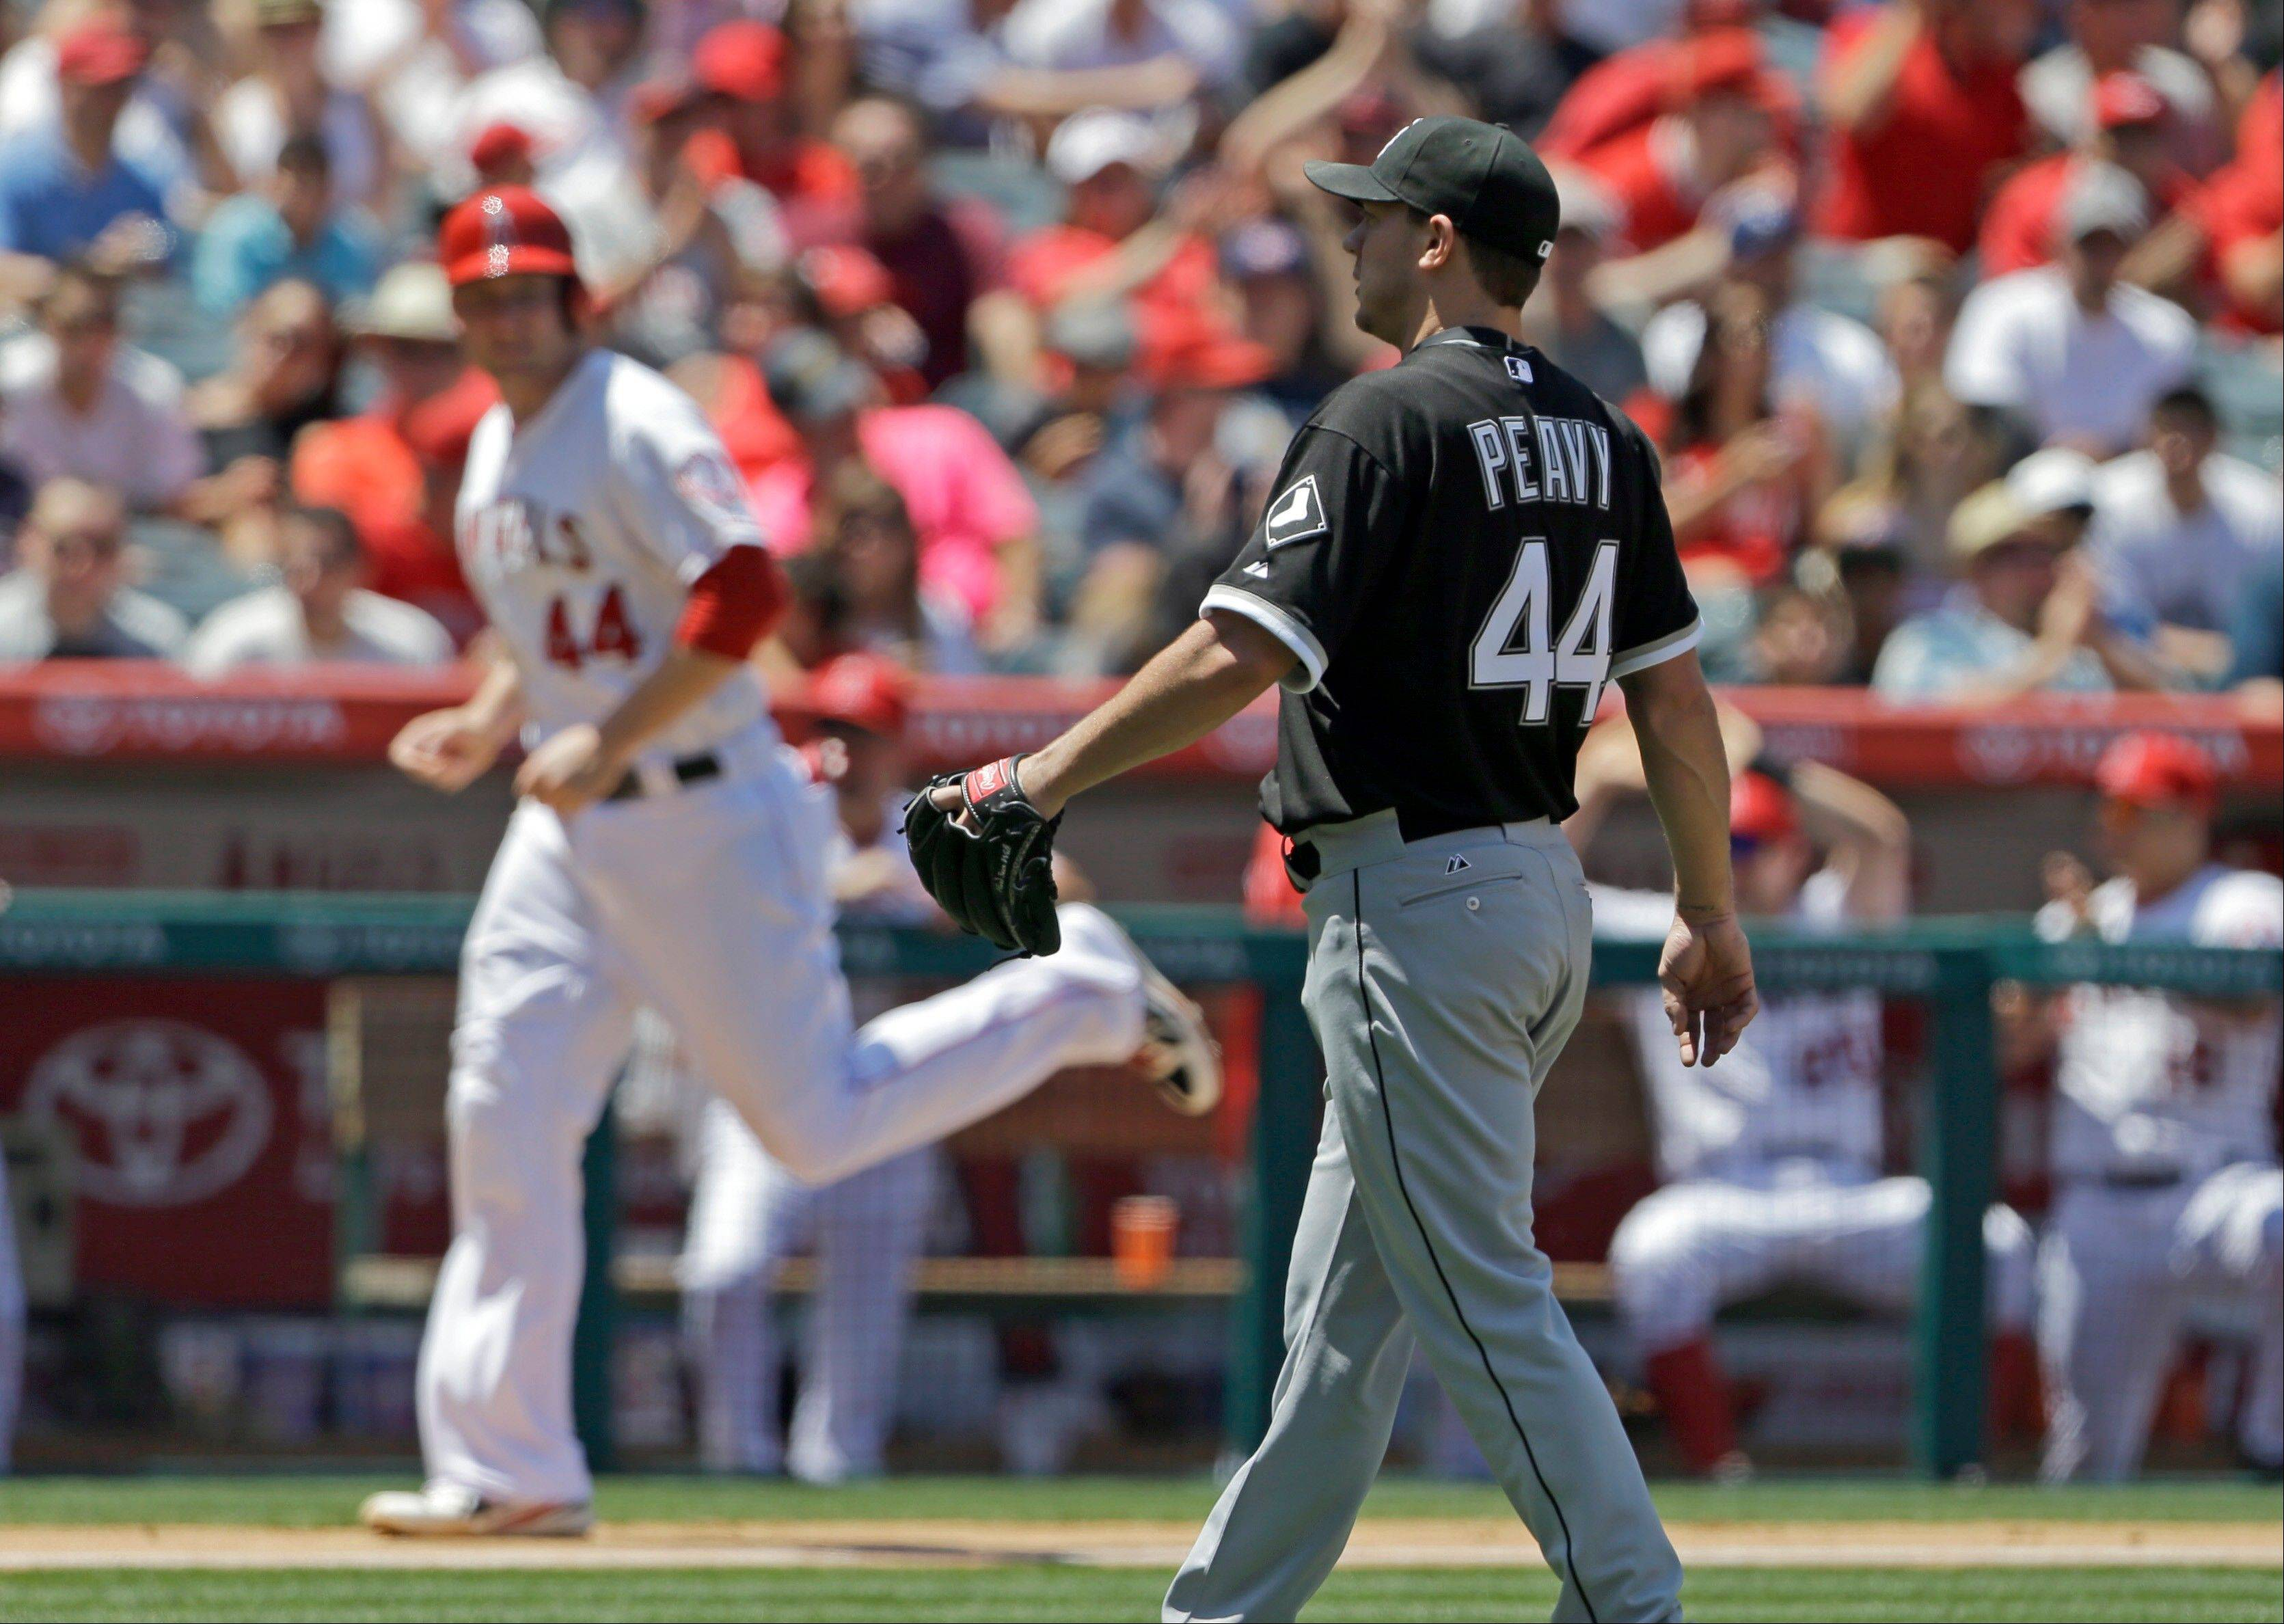 White Sox pitcher Jake Peavy watches as Los Angeles Angels� Mark Trumbo, background, scores on a bases-loaded walk in the fourth inning of a baseball game in Anaheim, Calif., Sunday, May 19, 2013.